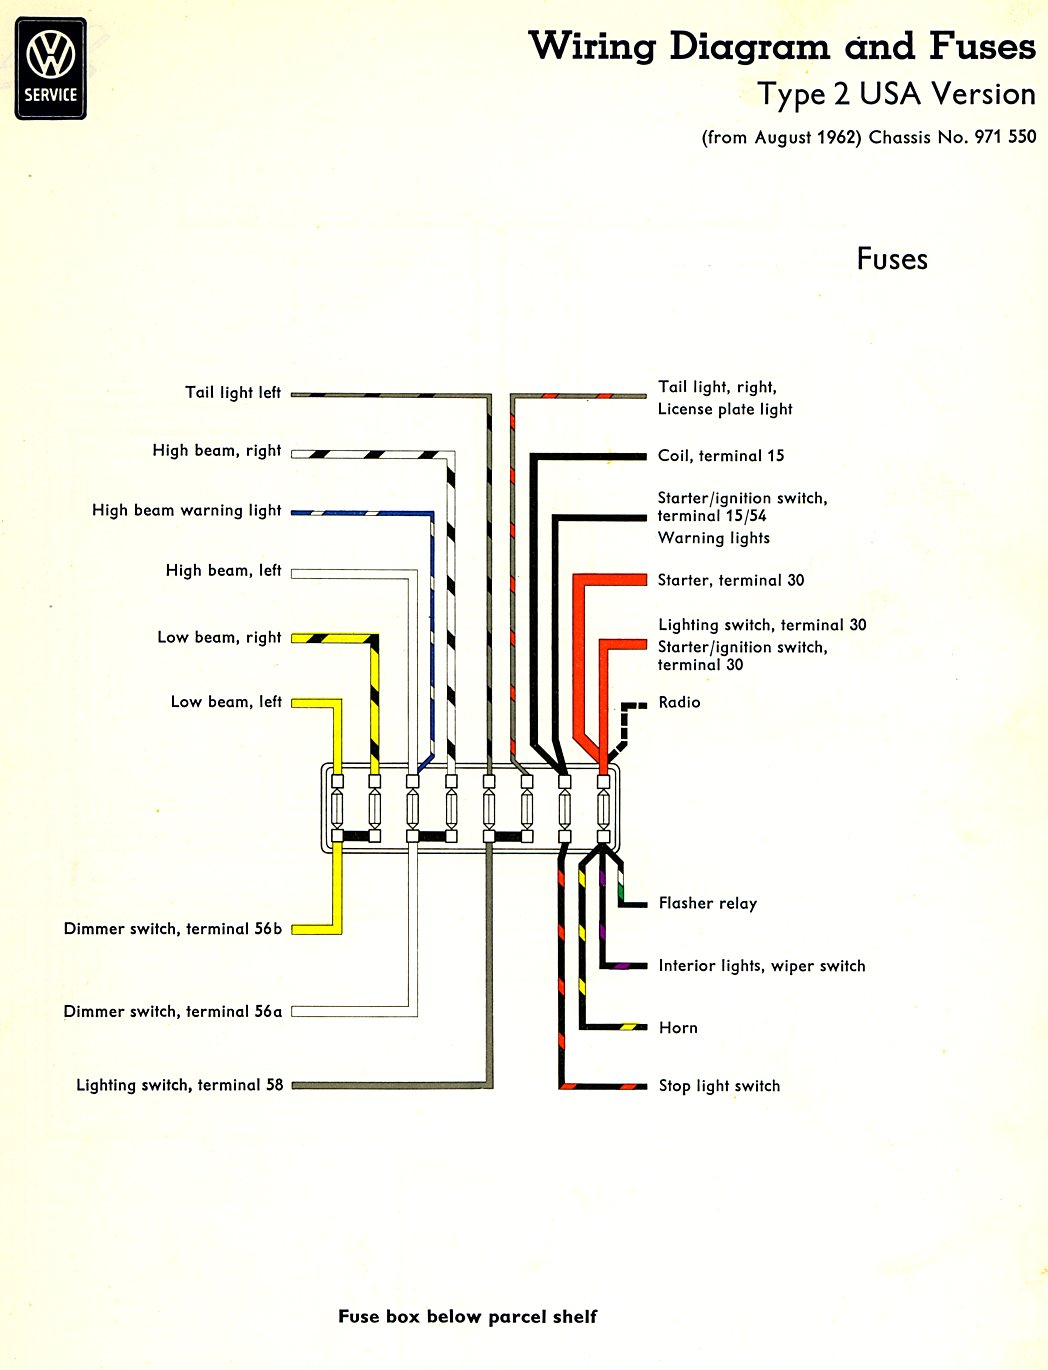 Type 2 Wiring Diagrams 68 Gmc Harness Diagram